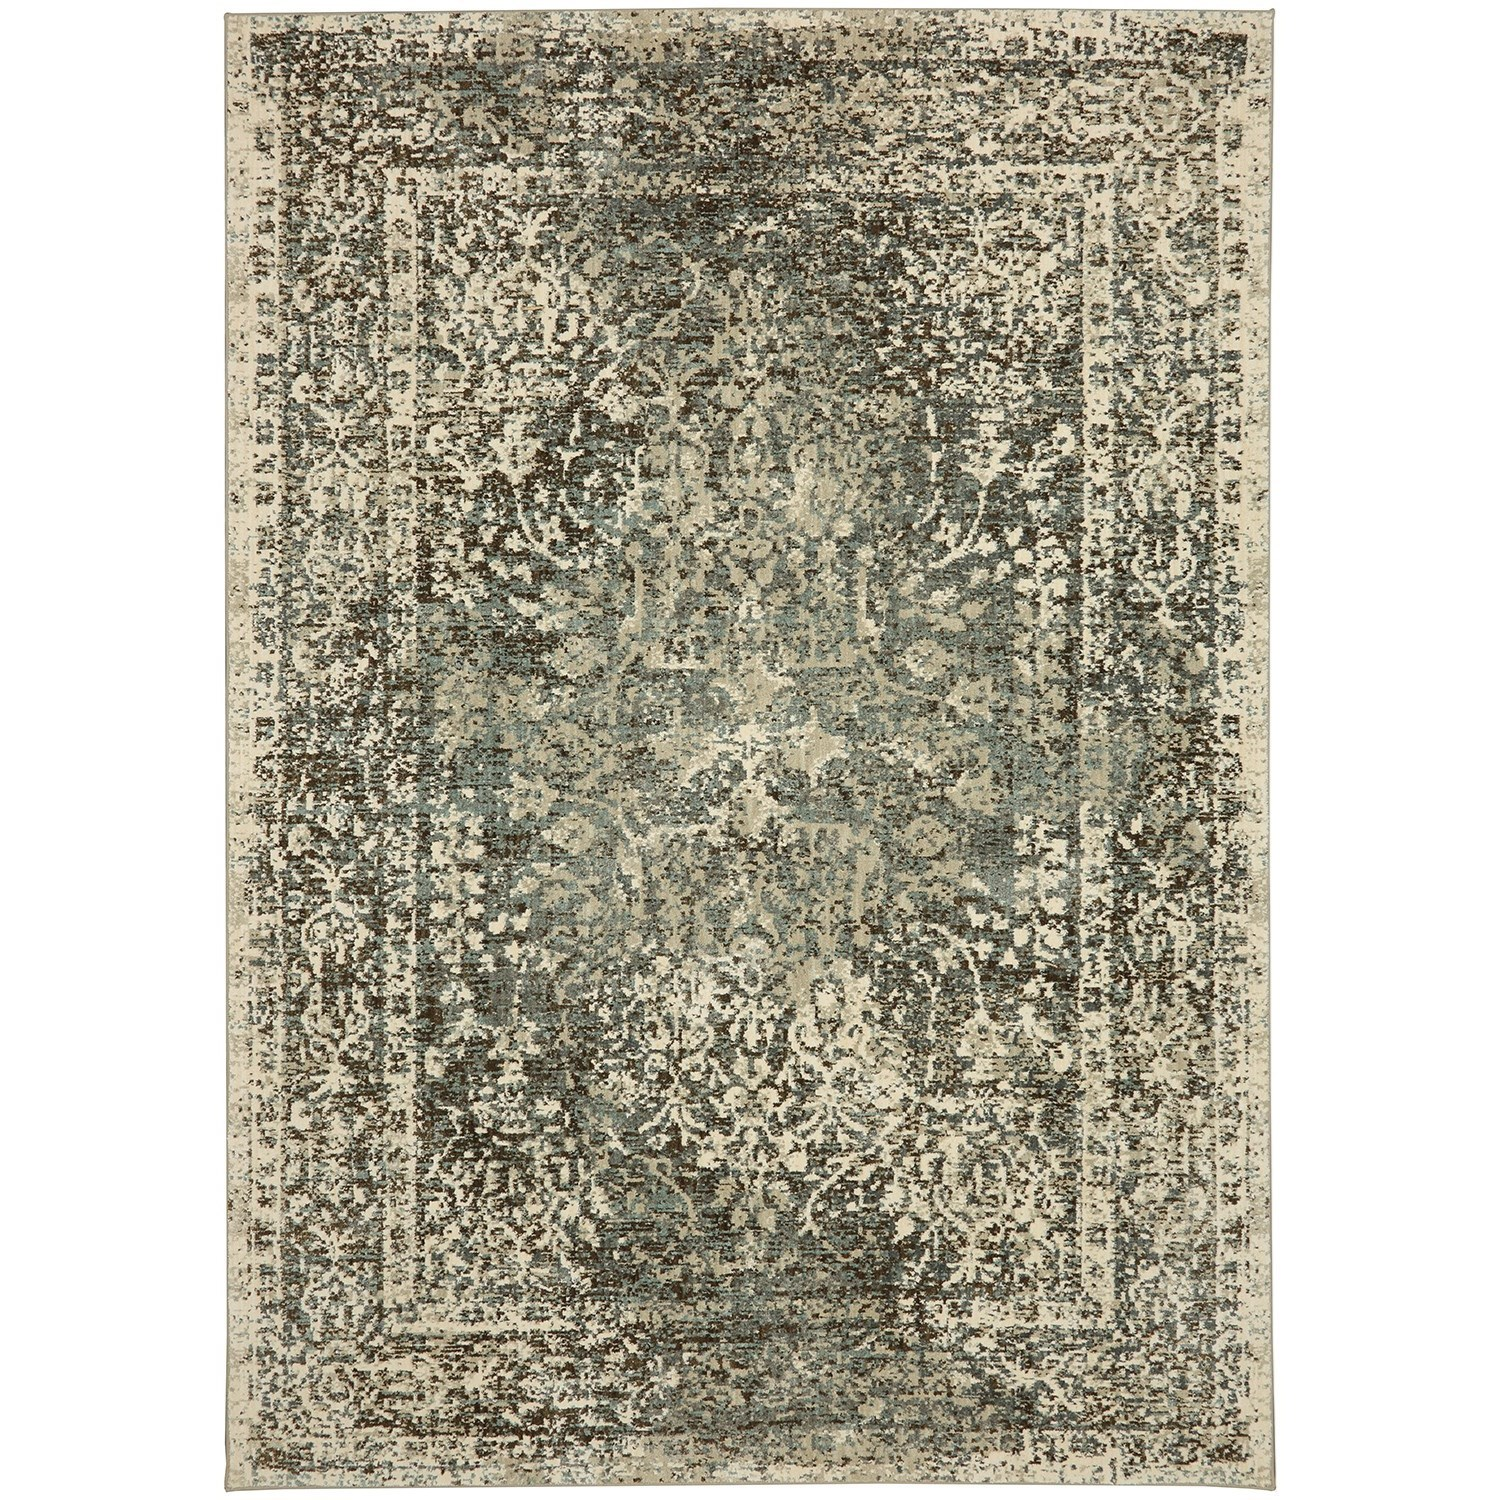 """Touchstone 9' 6""""x12' 11"""" Rectangle Ornamental Area Rug by Karastan Rugs at Darvin Furniture"""